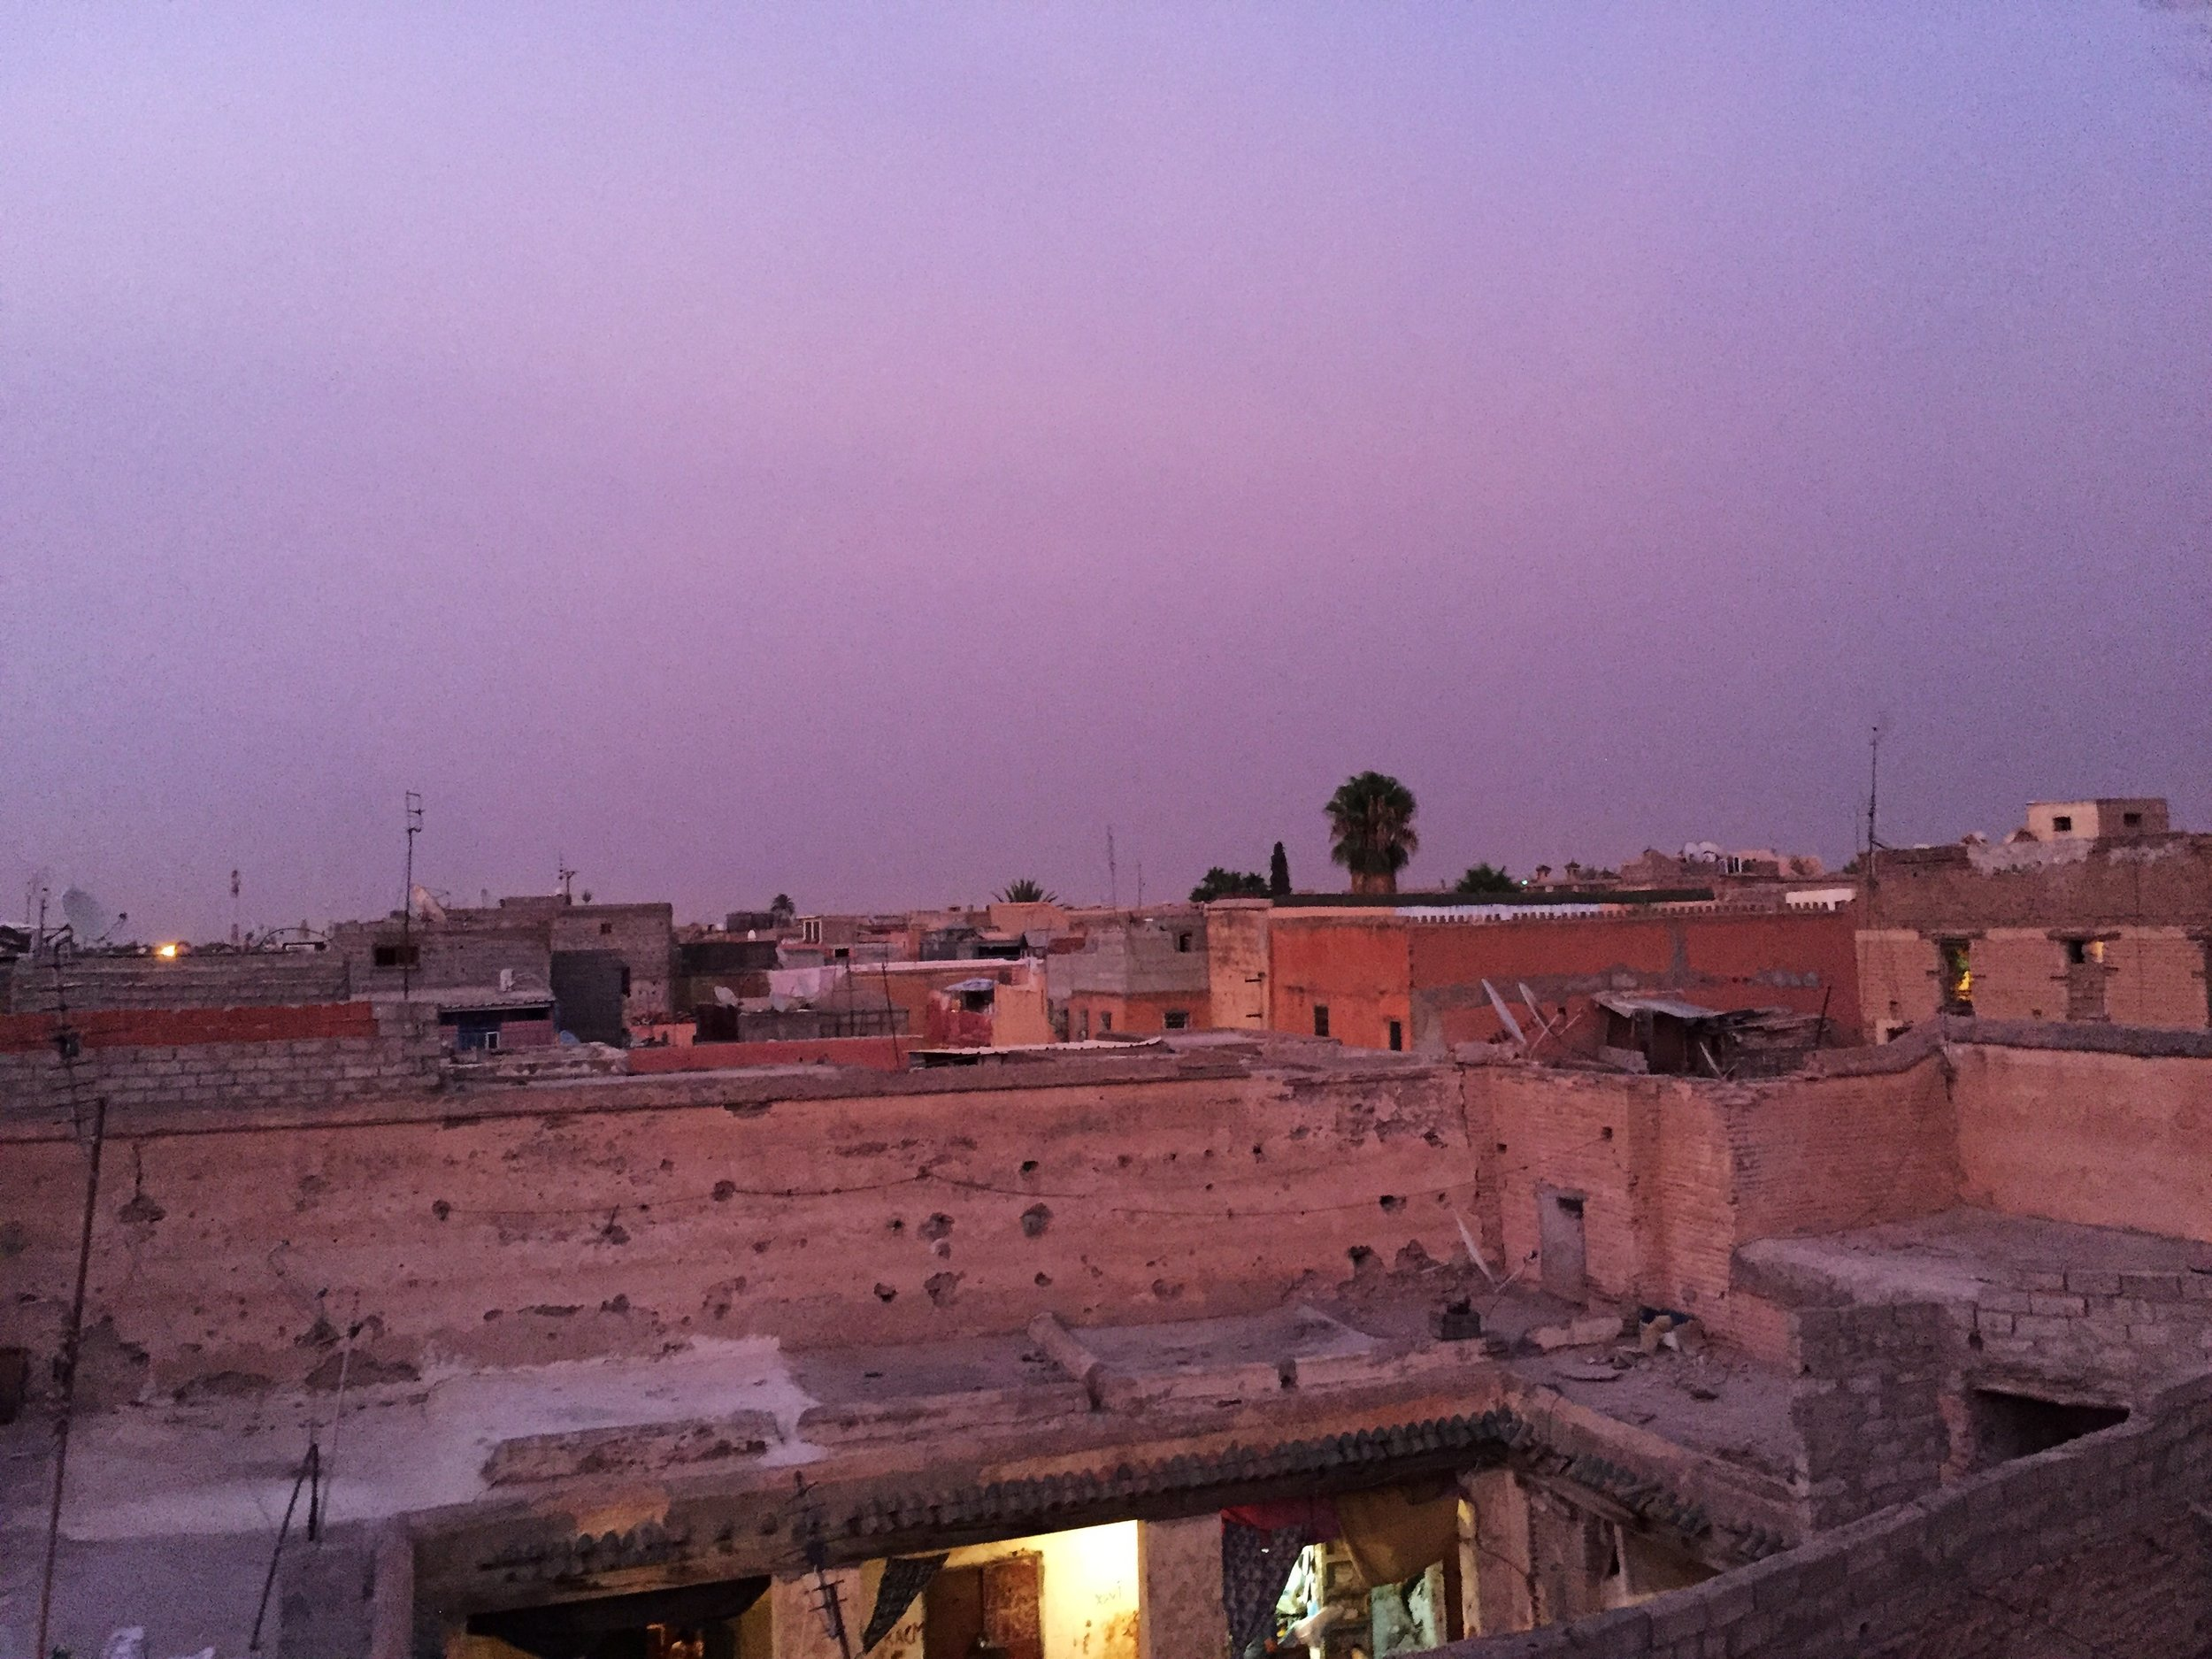 Pink sunset over Marrakech Medina— a perfect example that what can seem so peaceful and beautiful has a shadow lurking not too far below the surface.